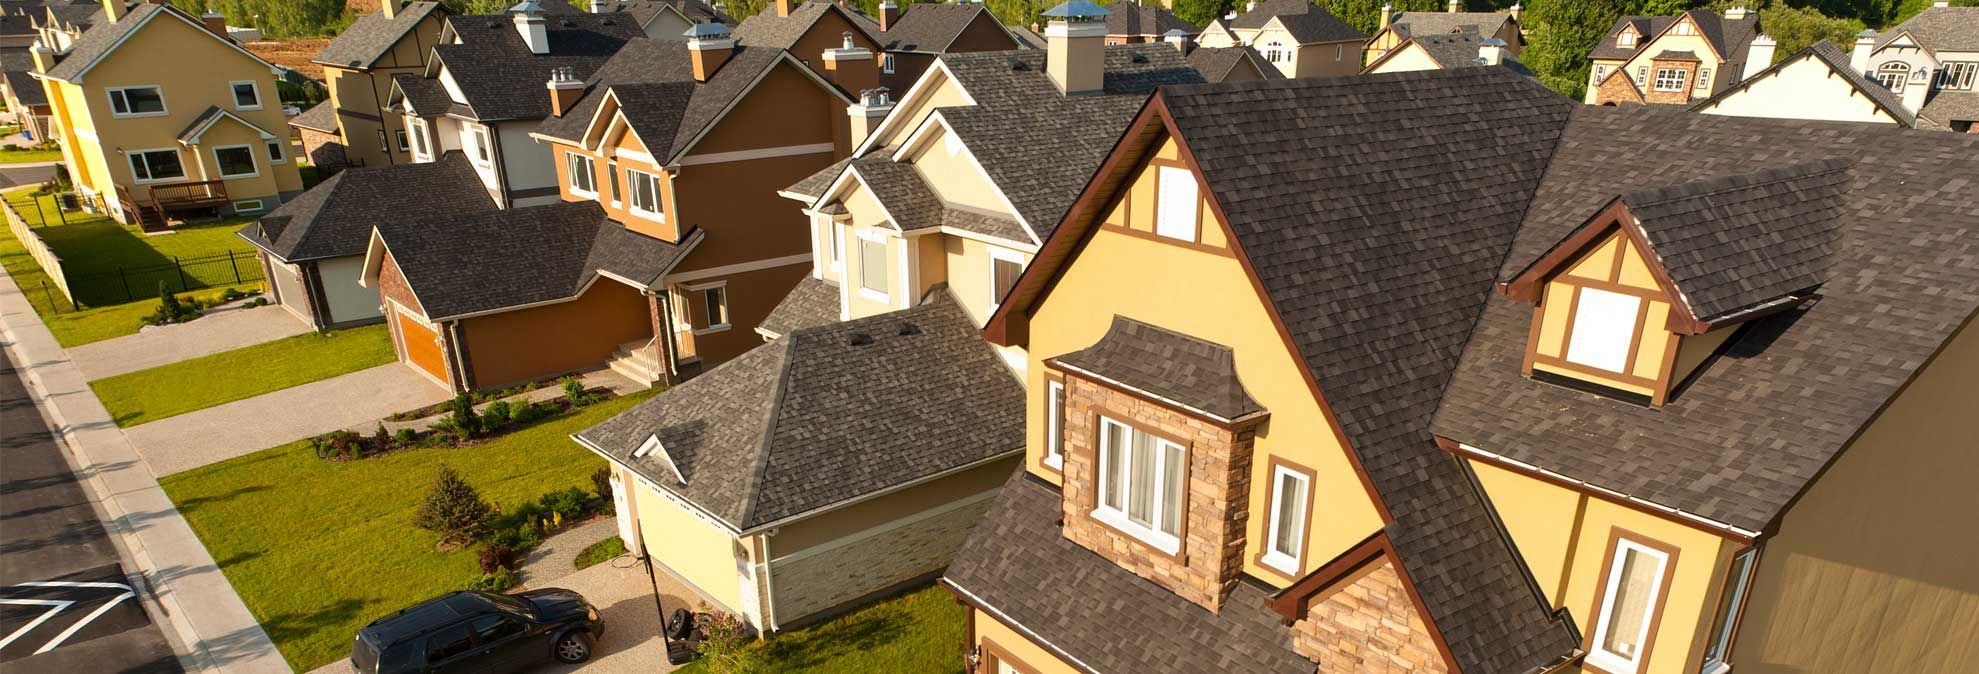 Homeowners Insurance Buying Guide